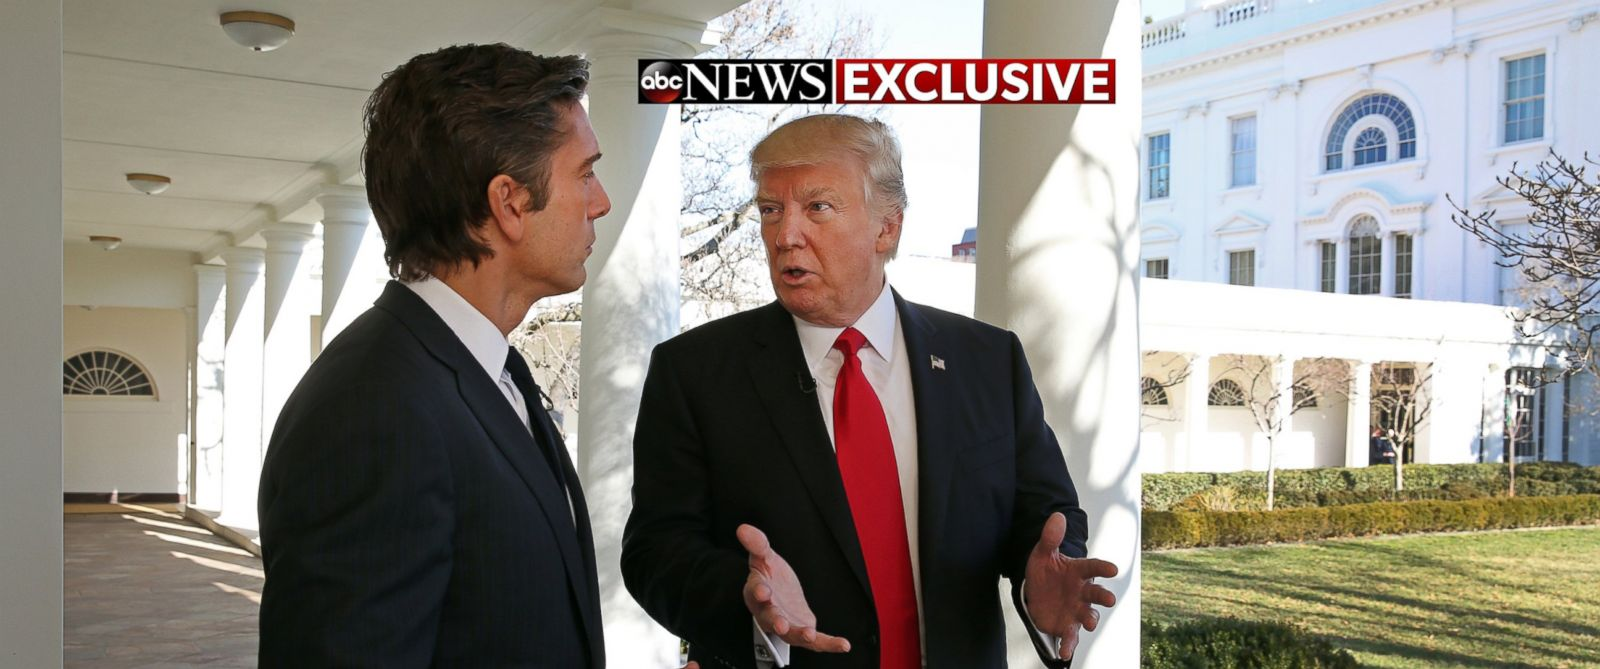 PHOTO: ABC News David Muir talks to President Donald J. Trump during a walk along the colonnade of the White House during Trumps first one-on-one television interview since being sworn in as the 45th president of the United States, Jan. 25, 2017.